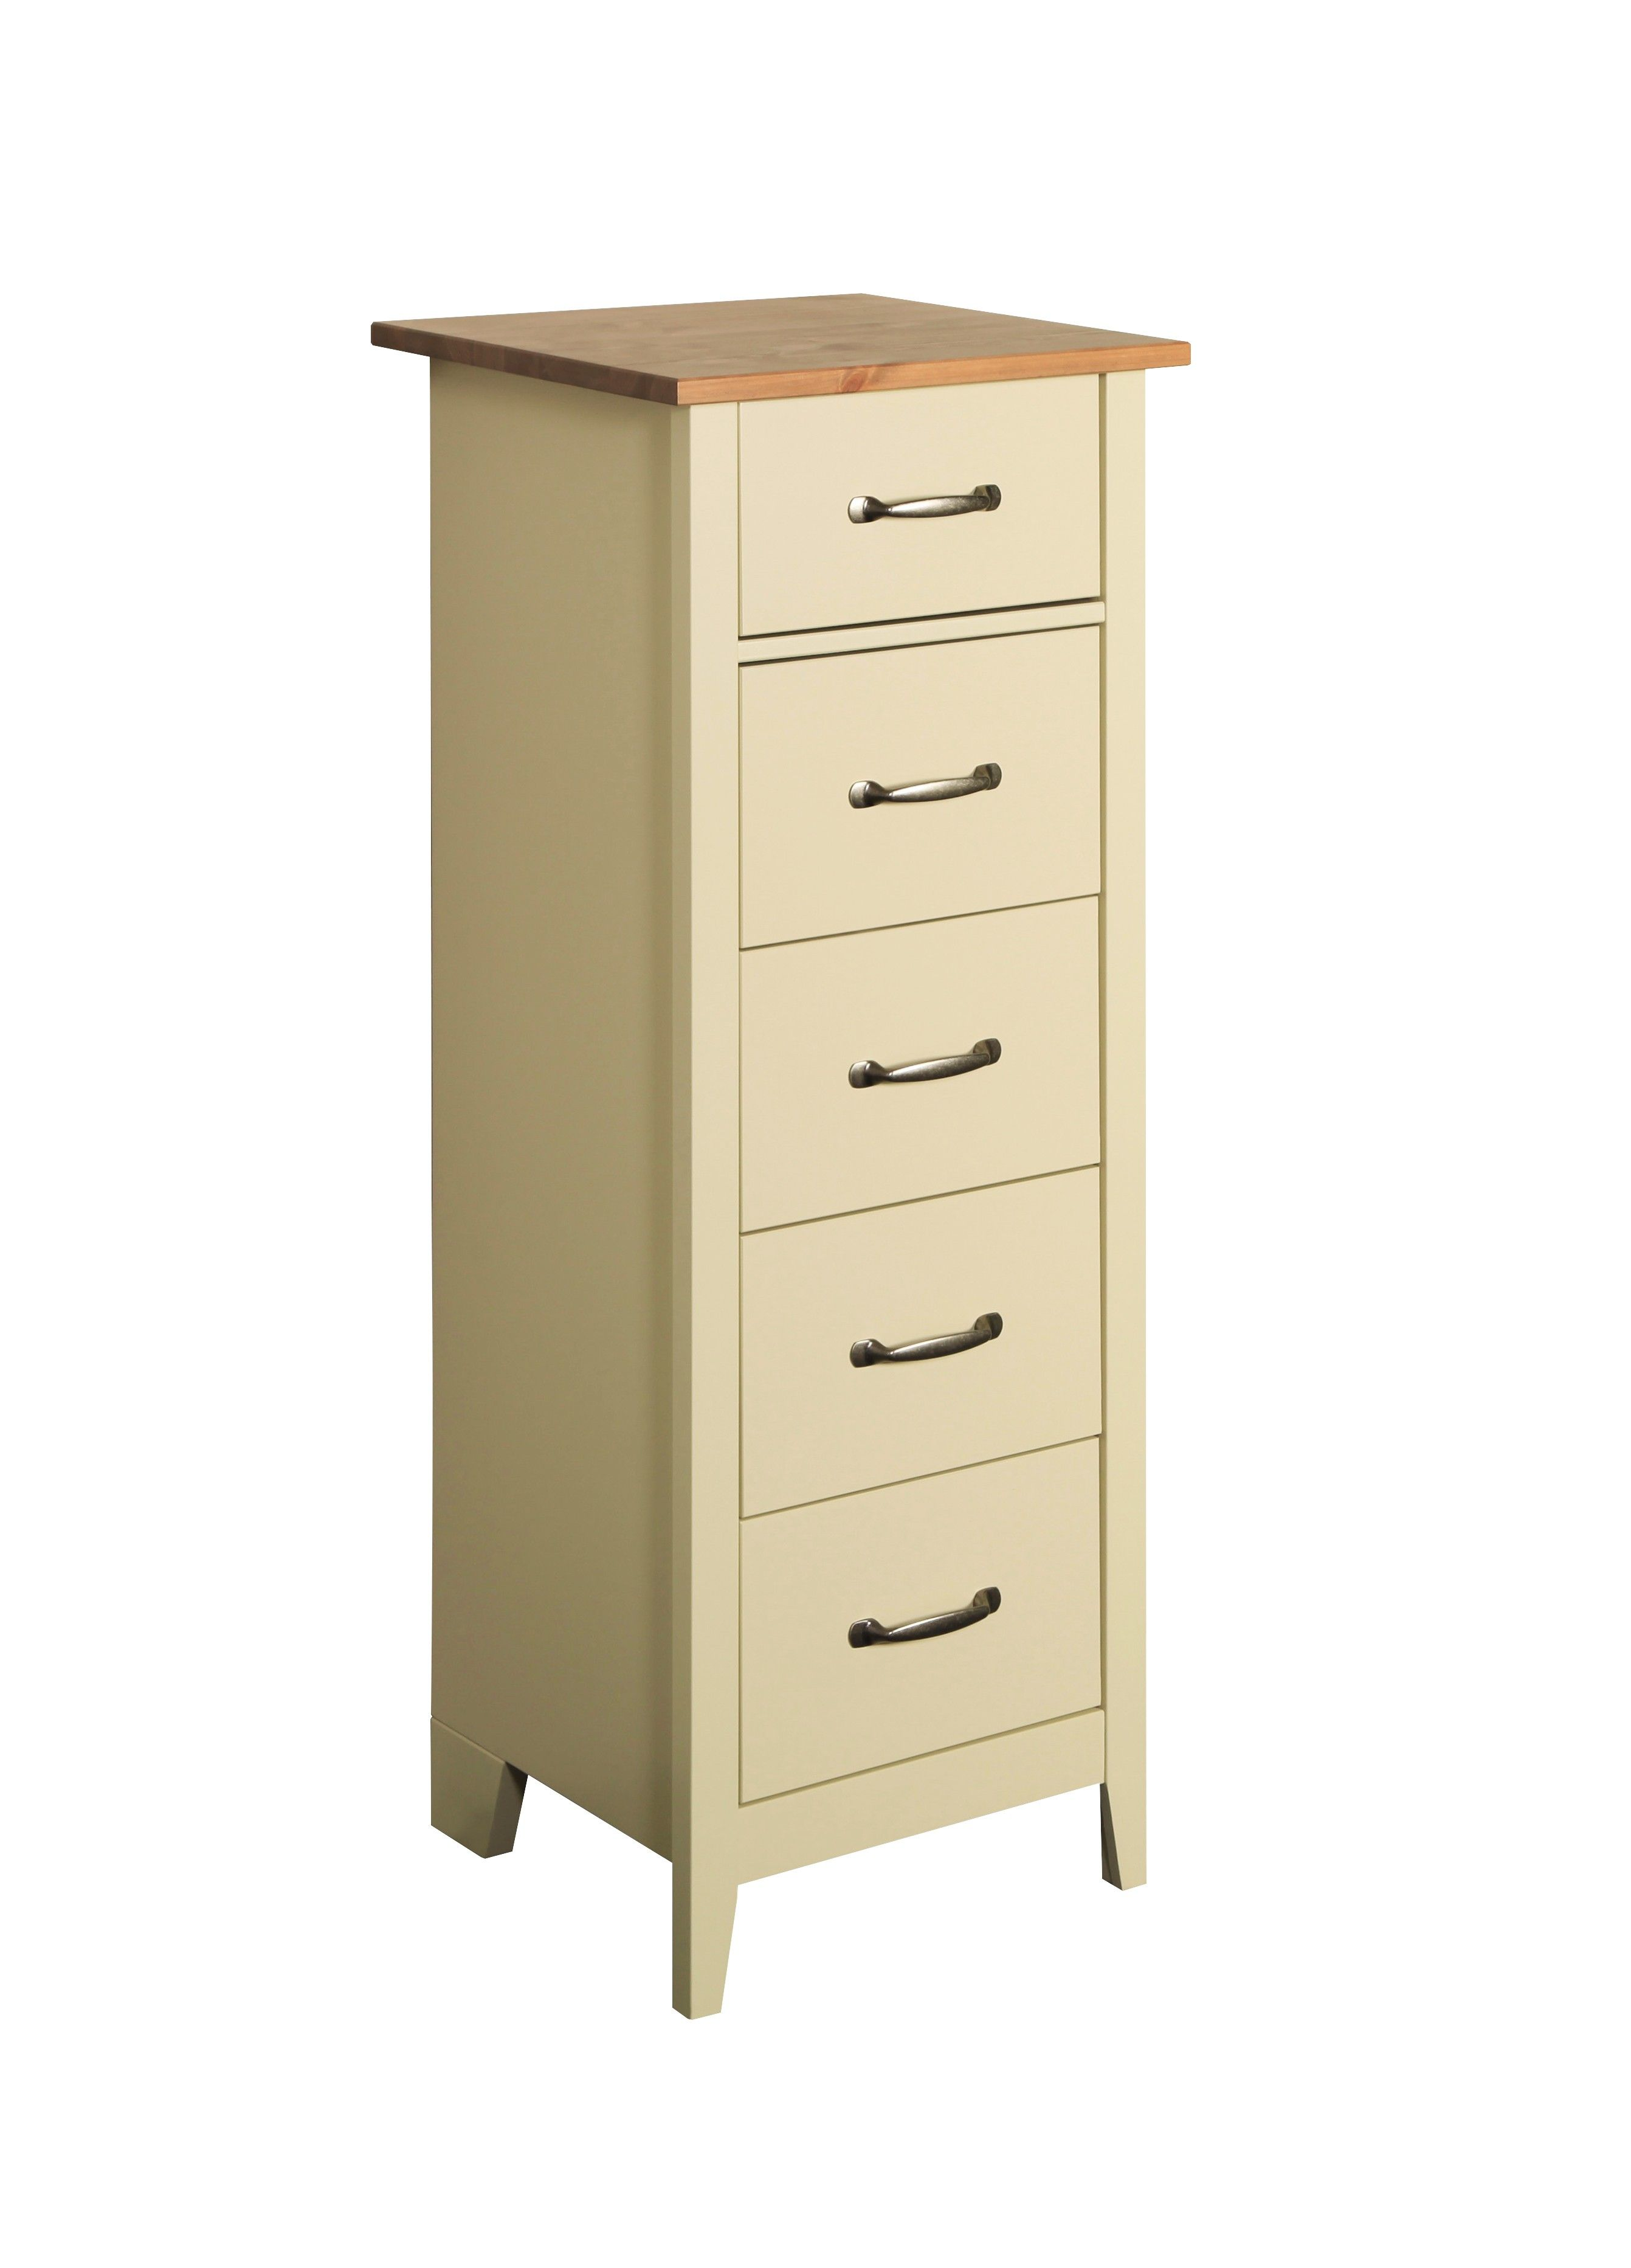 Best Steens Norfolk 5 Drawer Tall Narrow Chest Of Drawers In 400 x 300